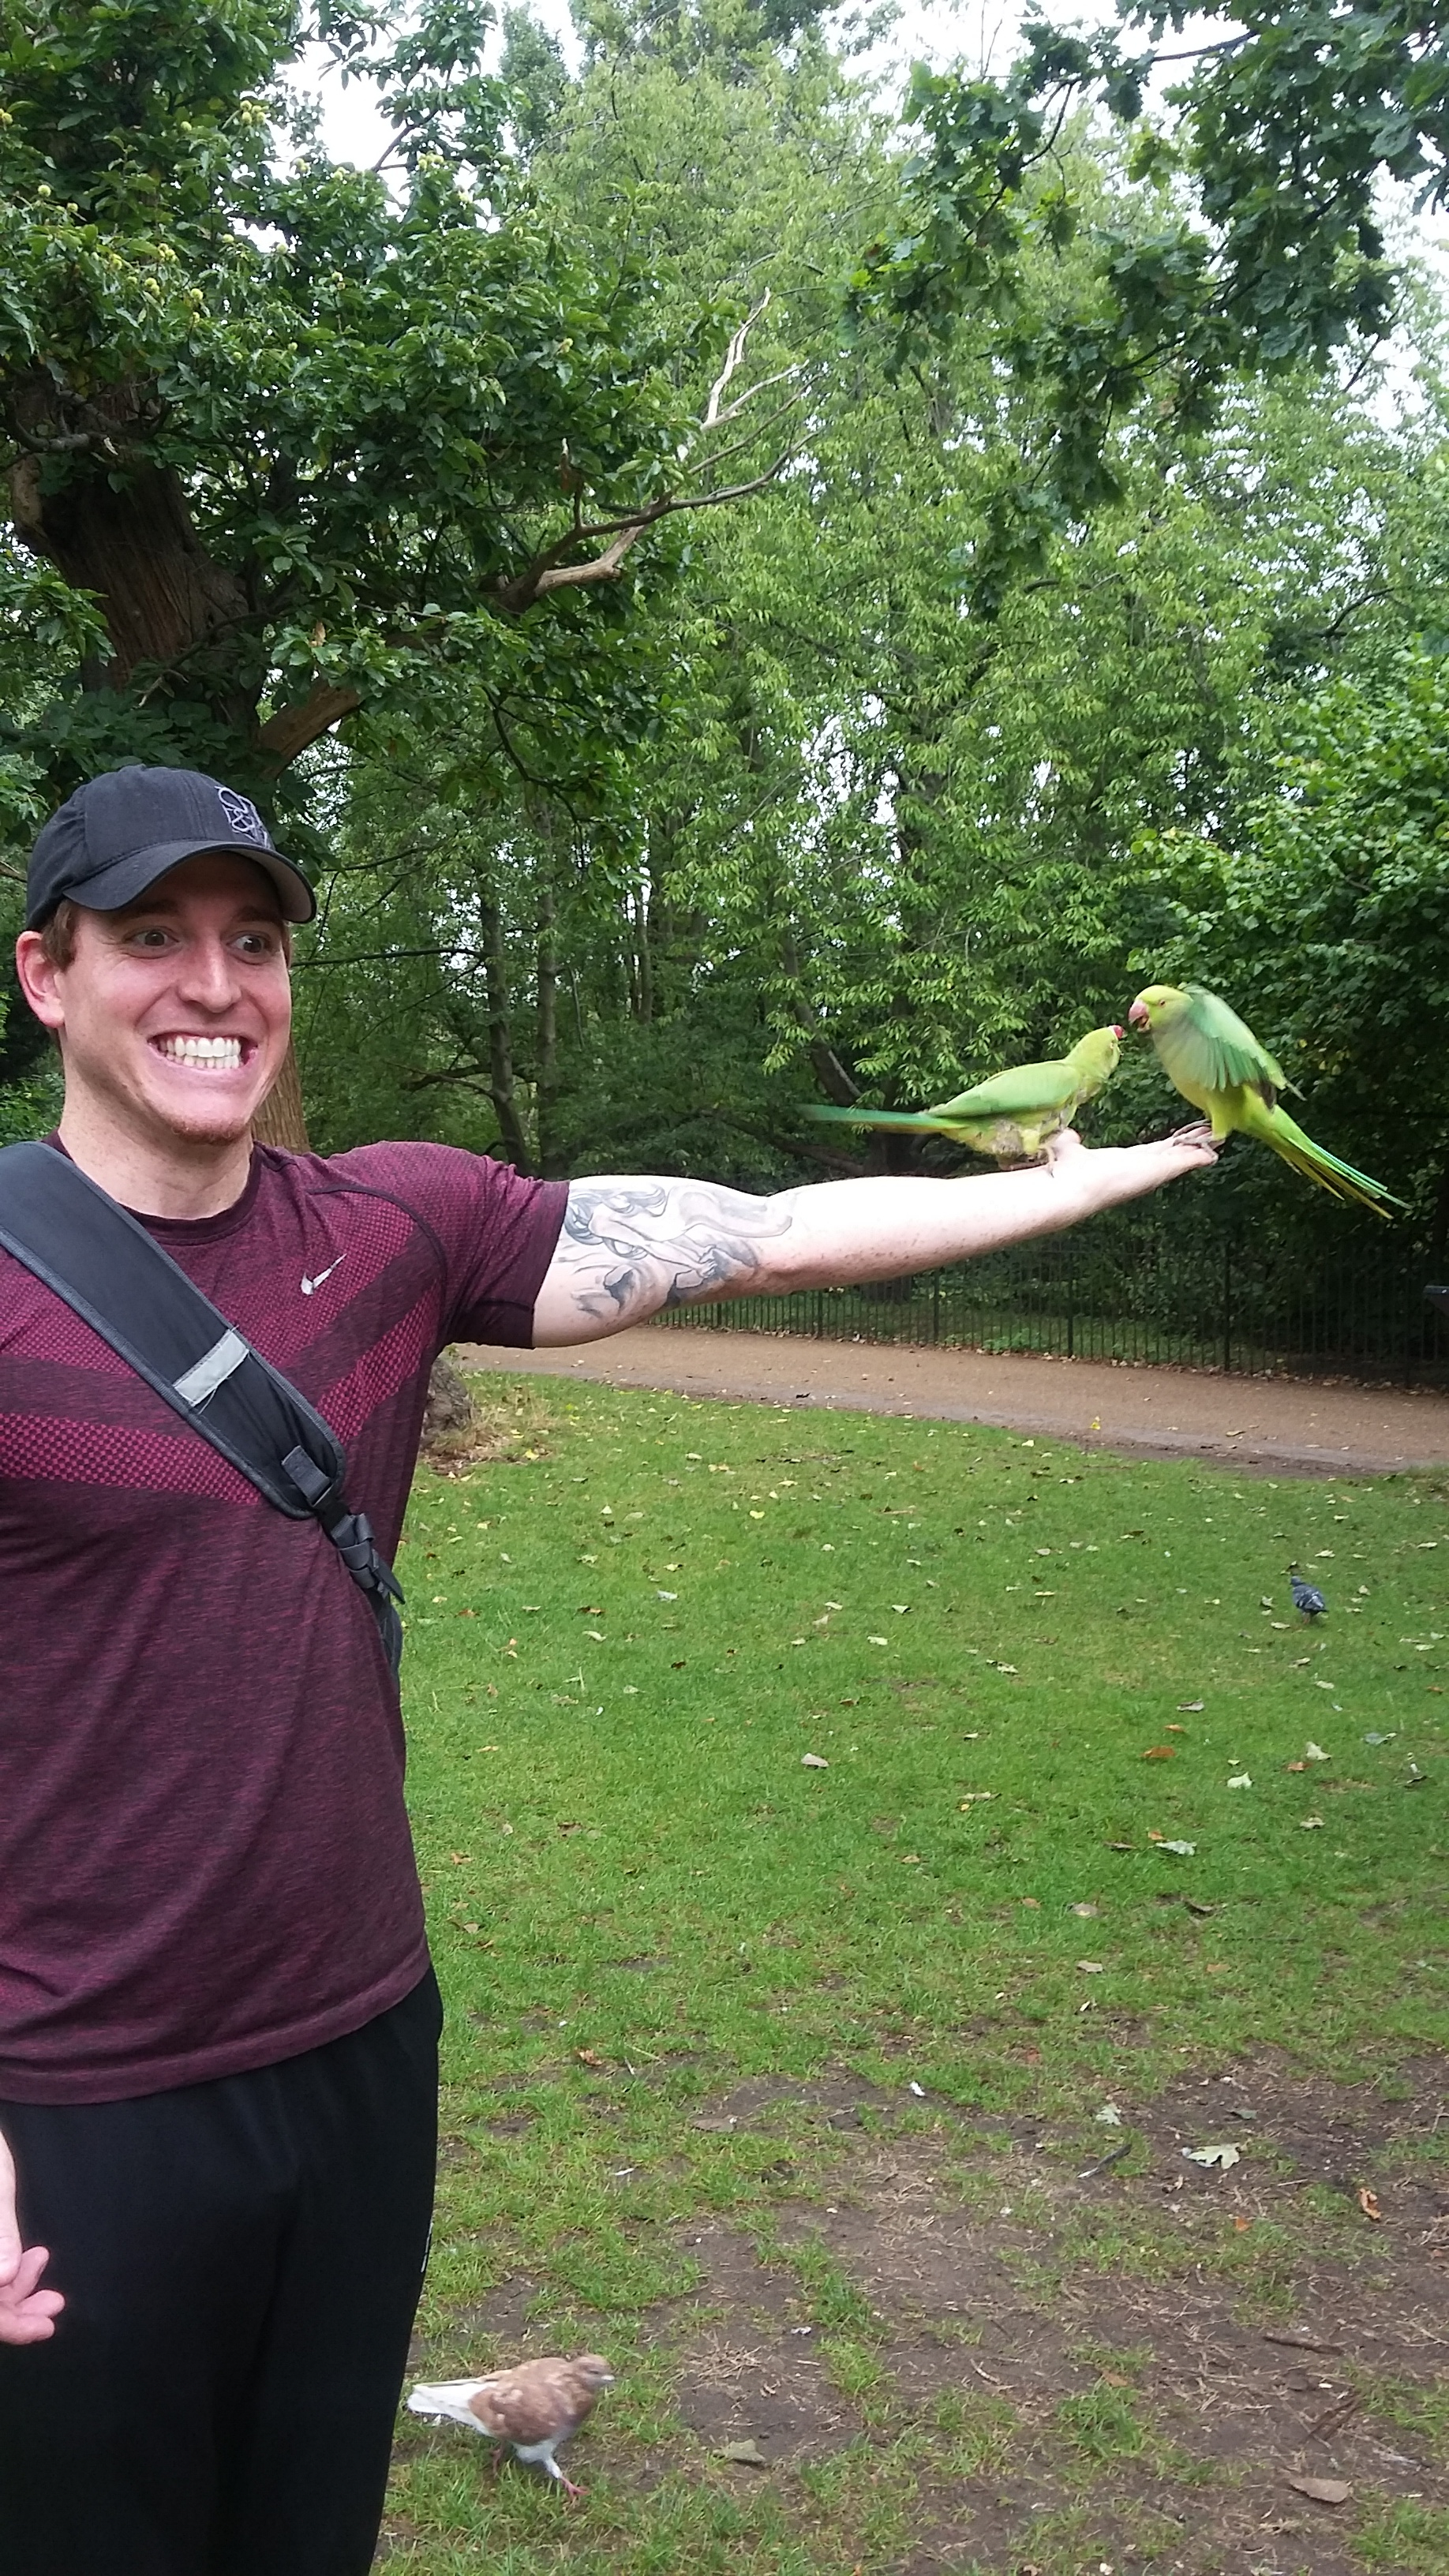 There were trees full of parakeets in the Kensington Gardens